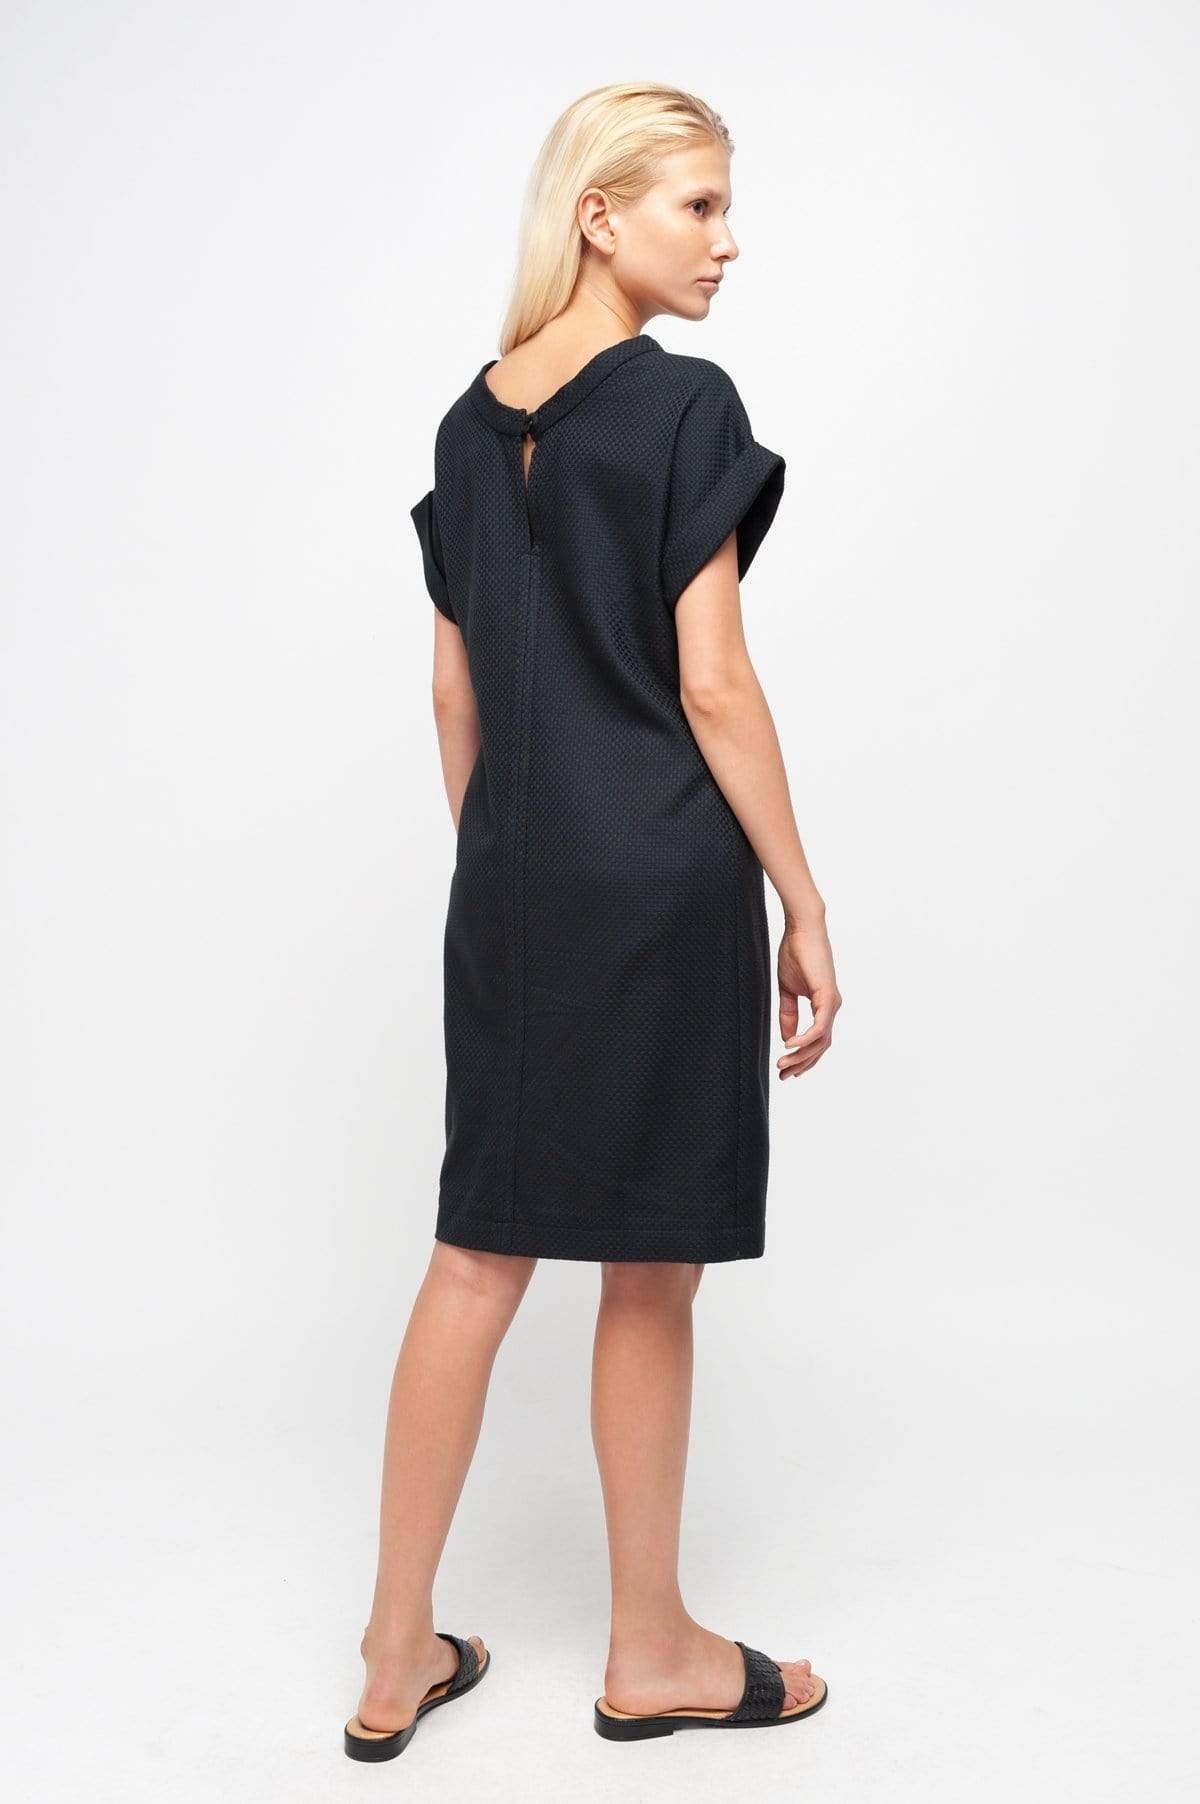 SHIPSHEIP dress Camille Dress. Organic Cotton. sustainable fashion ethical fashion